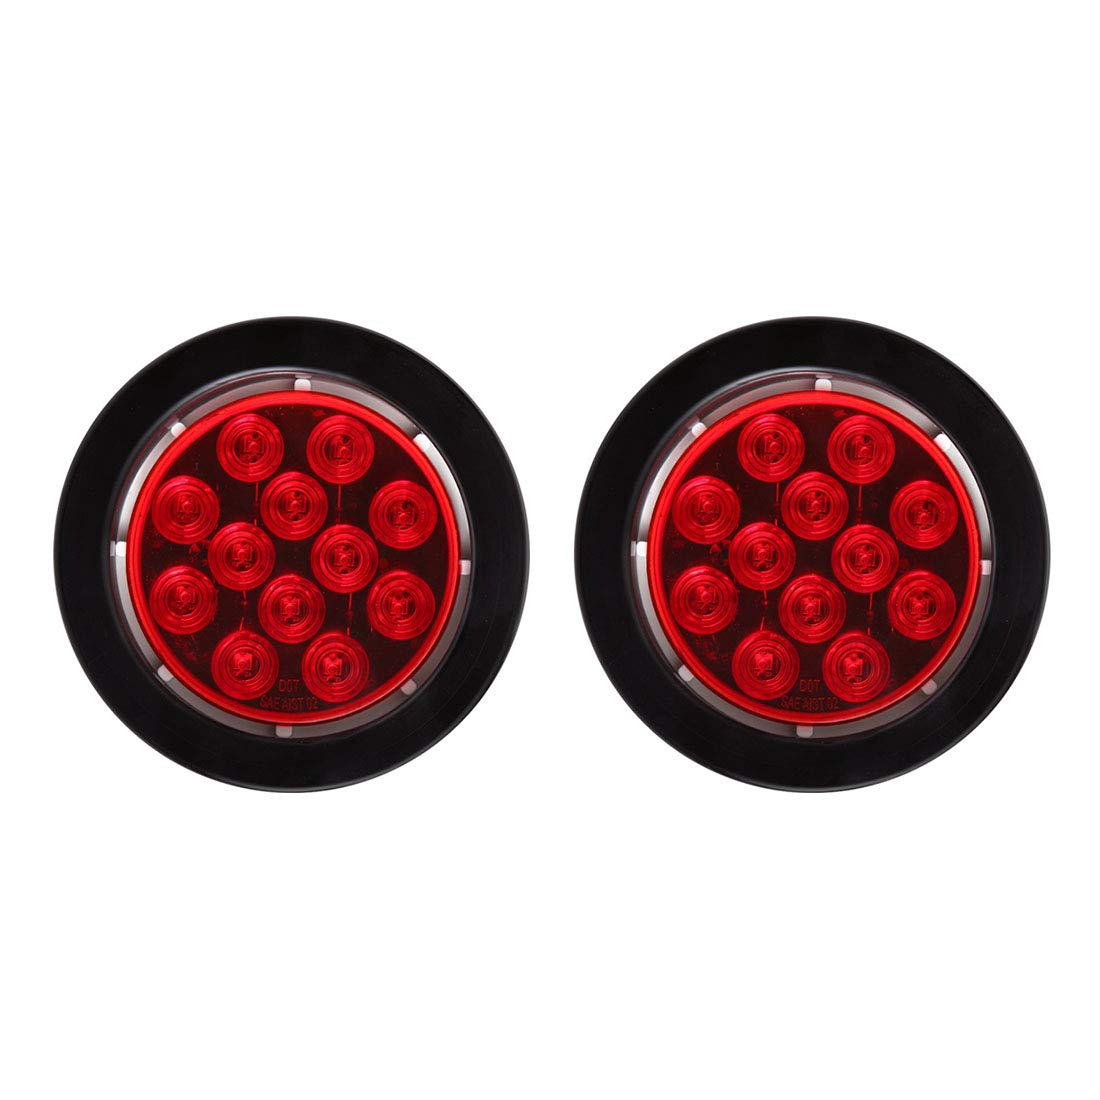 CZC AUTO Submersible Red Lens 4'' Round LED Trailer Stop Tail Turn Running Light with Grommet and Plug for Boat Trailer Truck (2Pack)